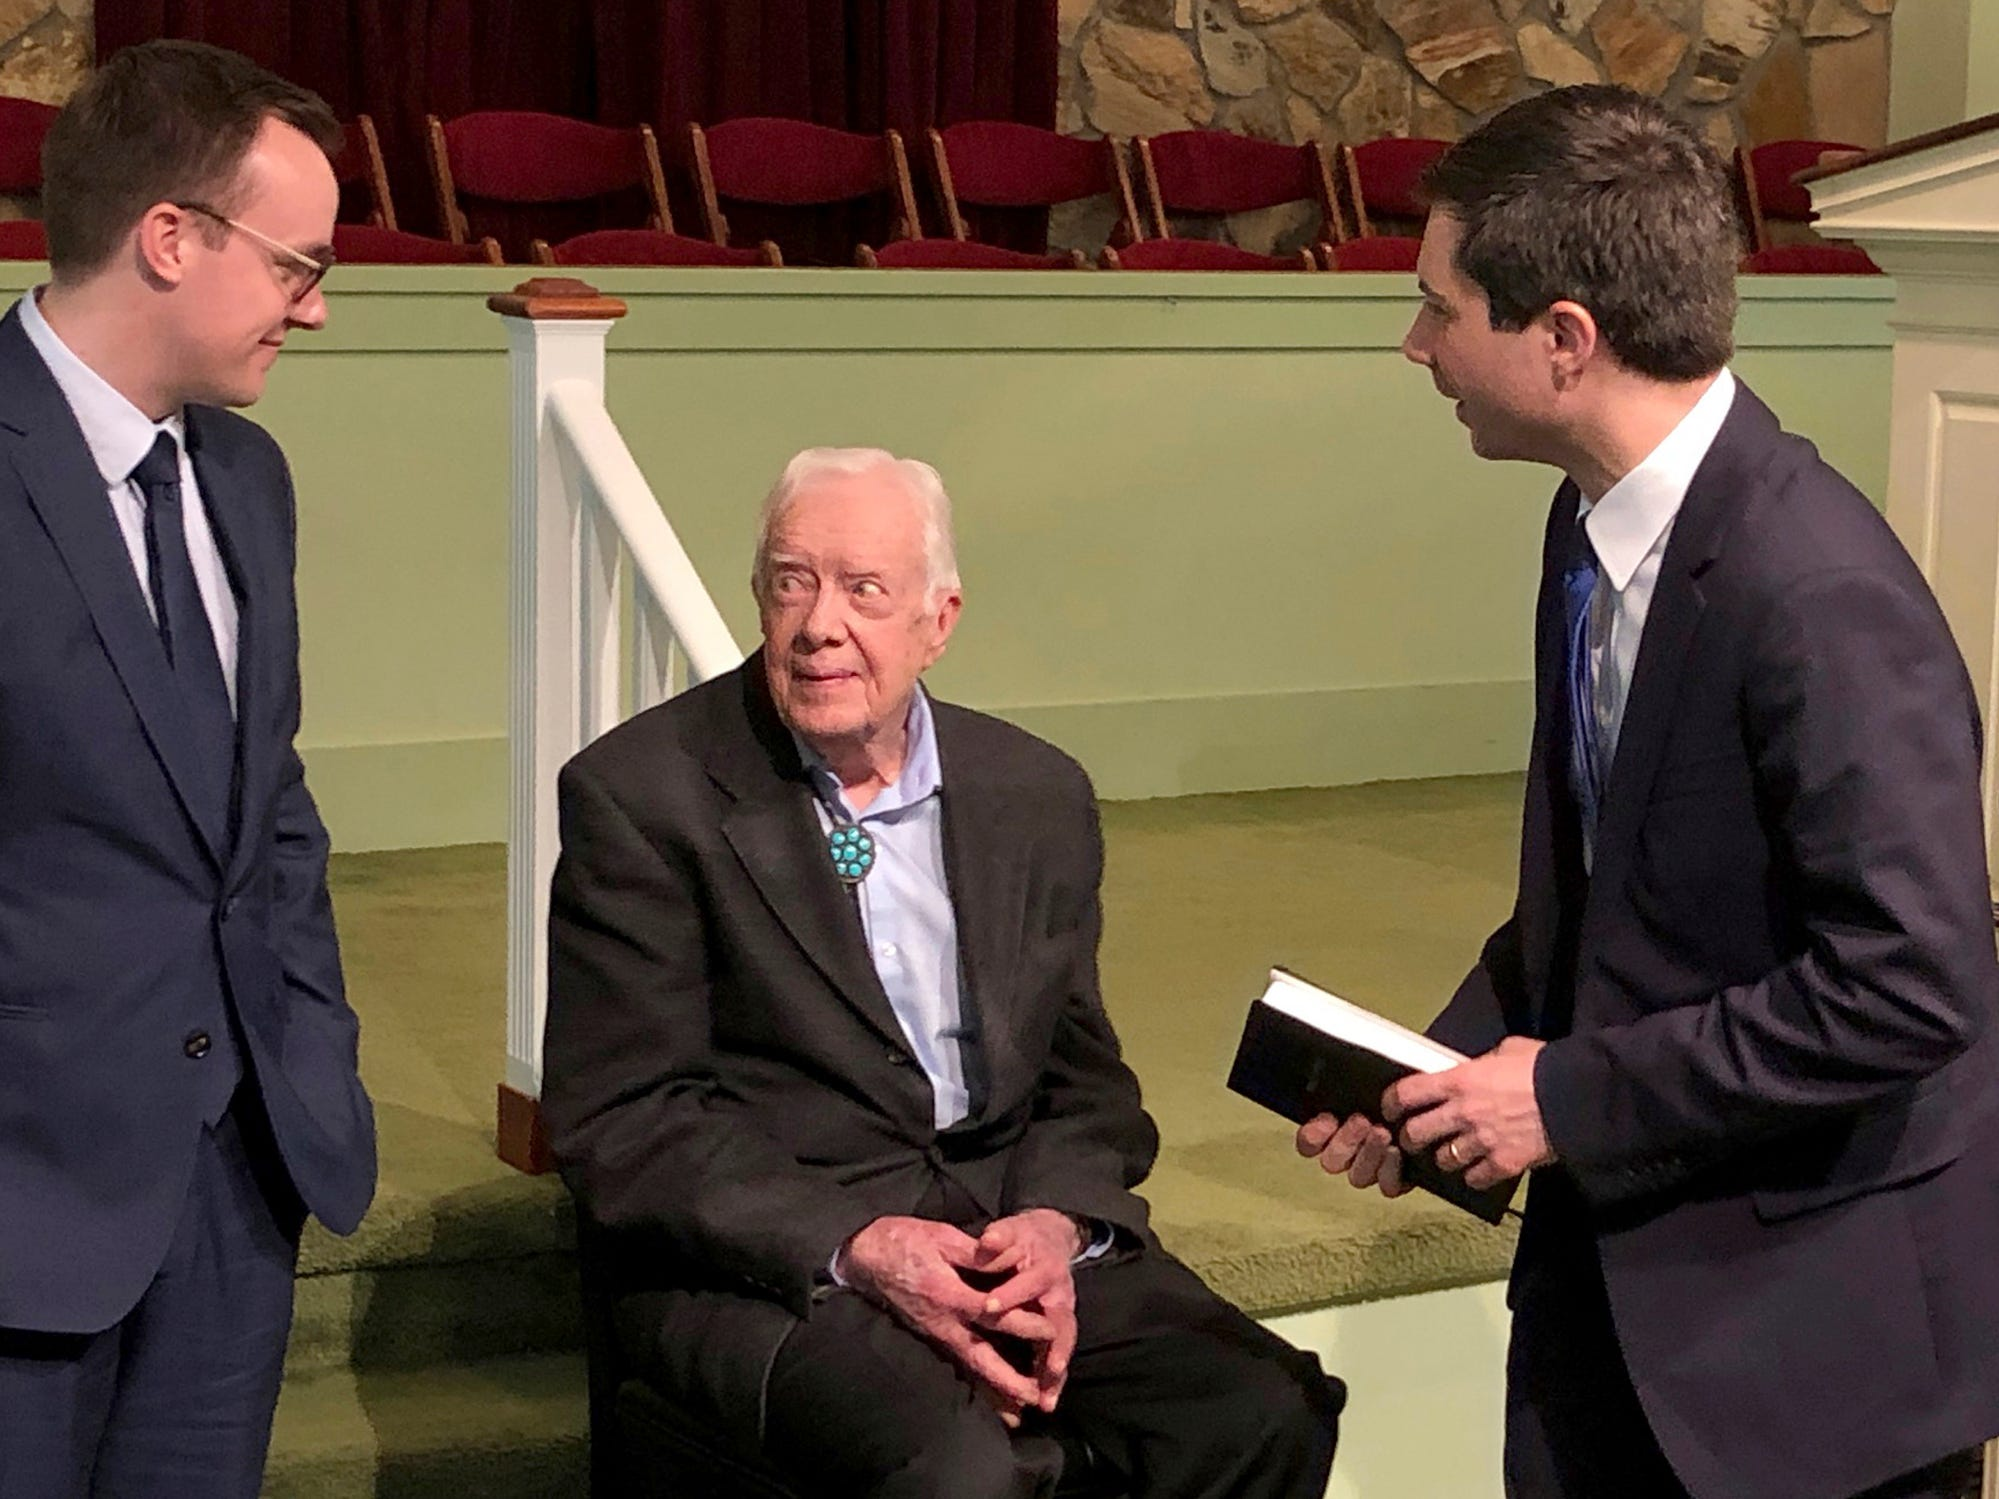 Democratic presidential candidate Pete Buttigieg, right, and his husband, Chasten Glezman, left, speak with former President Jimmy Carter at former President Jimmy Carter's Sunday school class in Plains, Ga. Sunday, May 5, 2019.